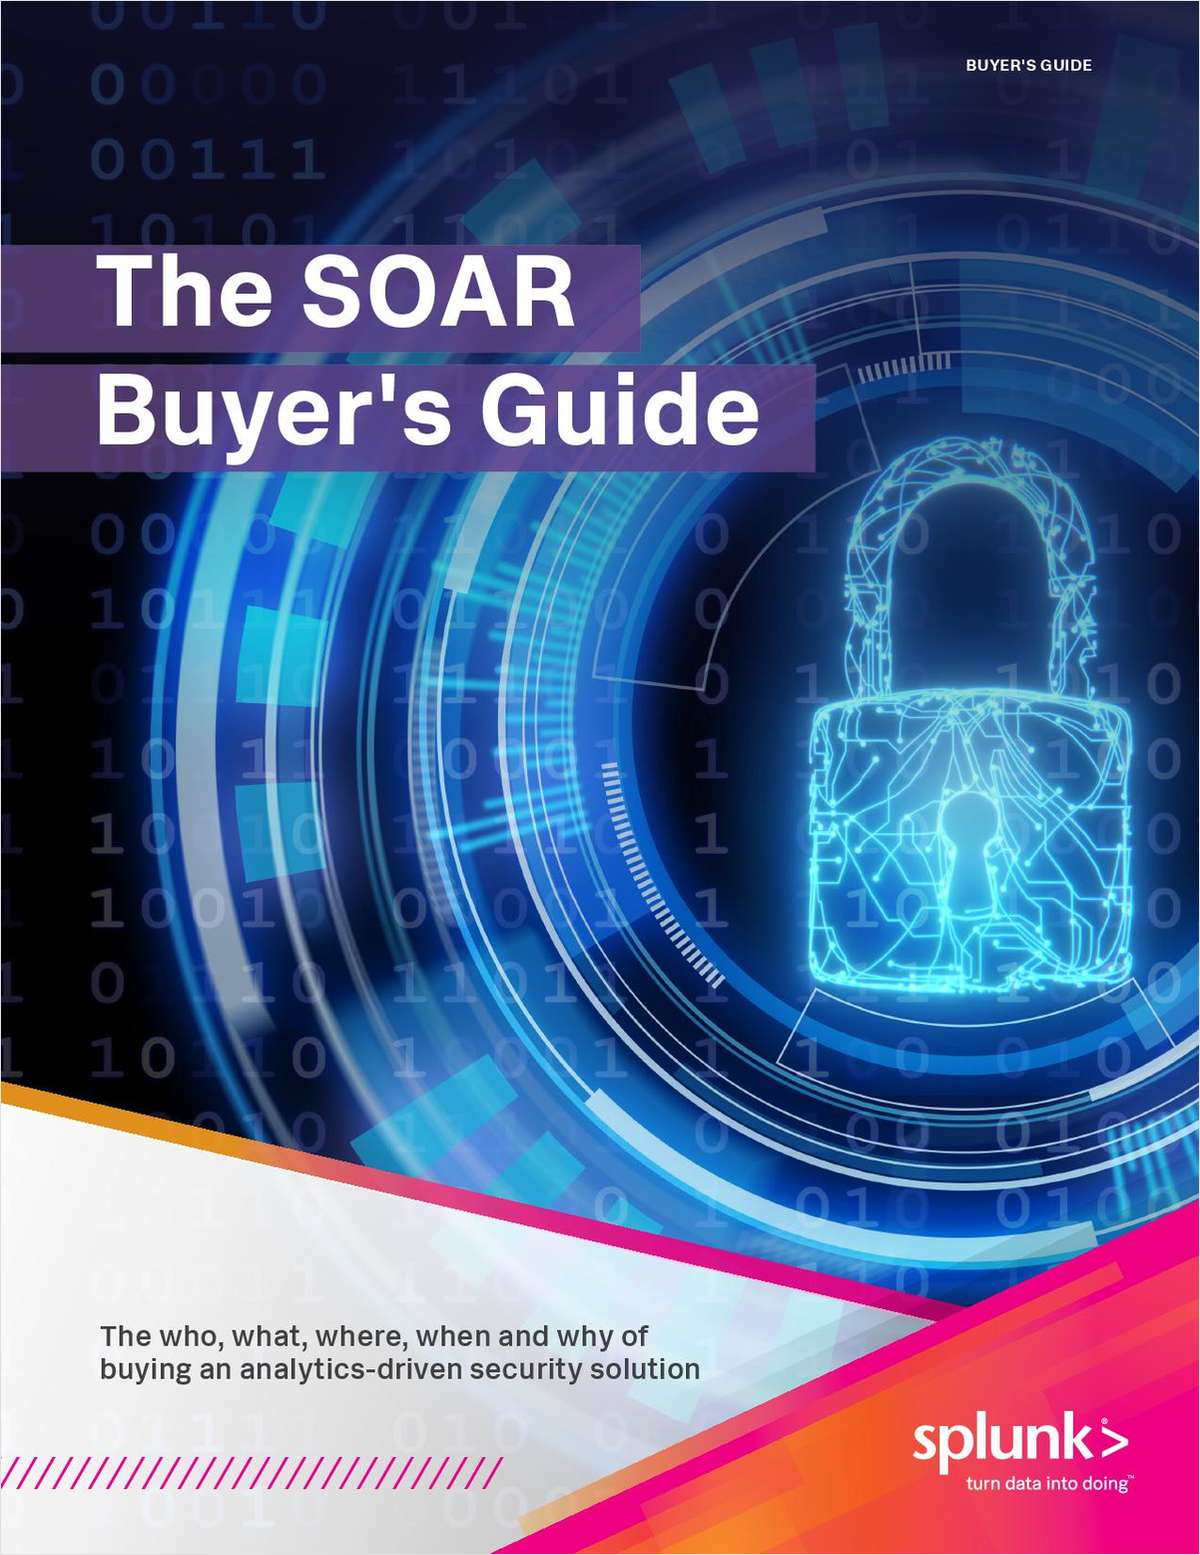 The SOAR Buyers Guide